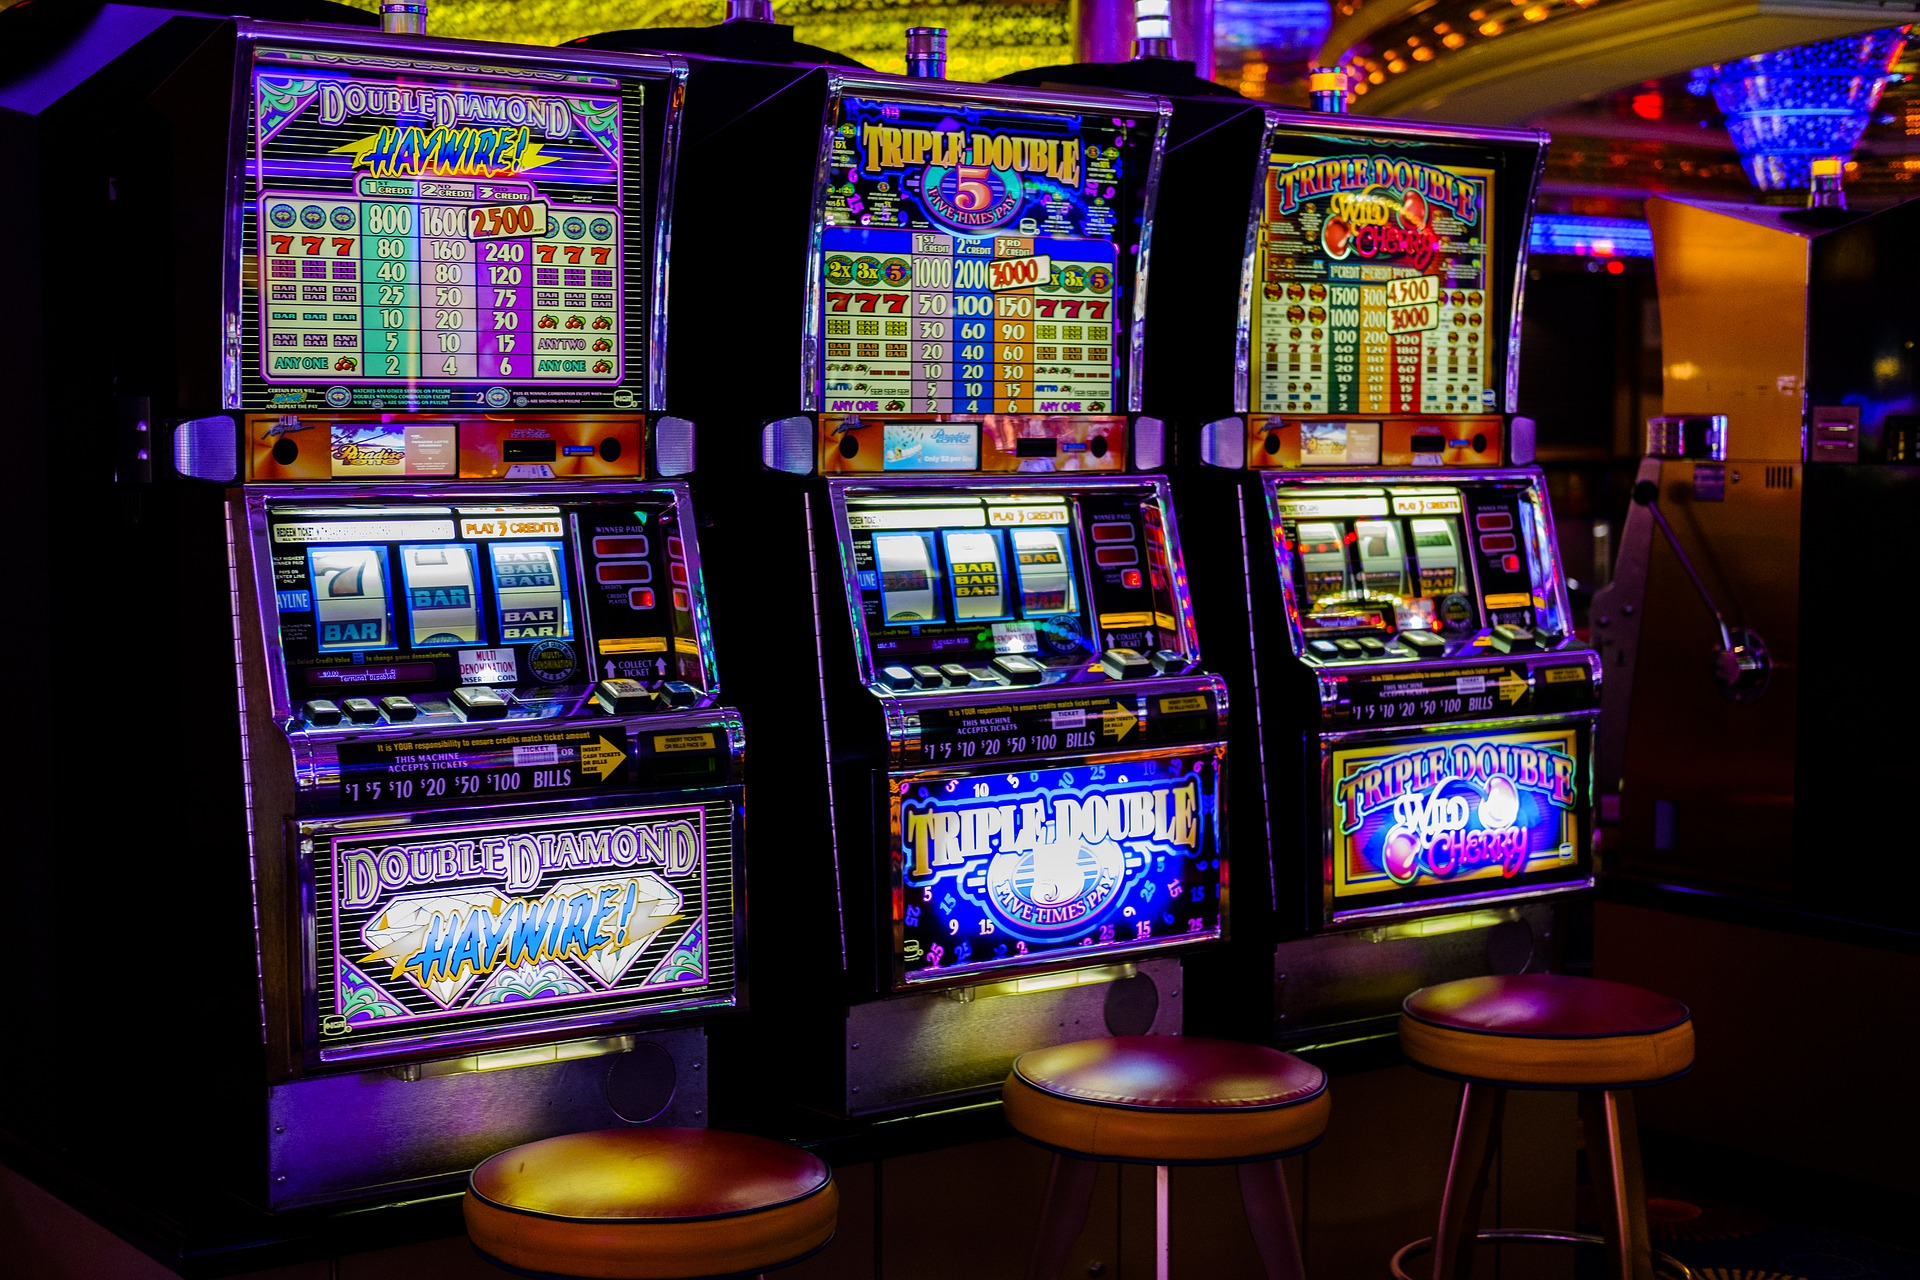 The Real Reason Some People Get Hooked on Slot Machines | Psychology Today